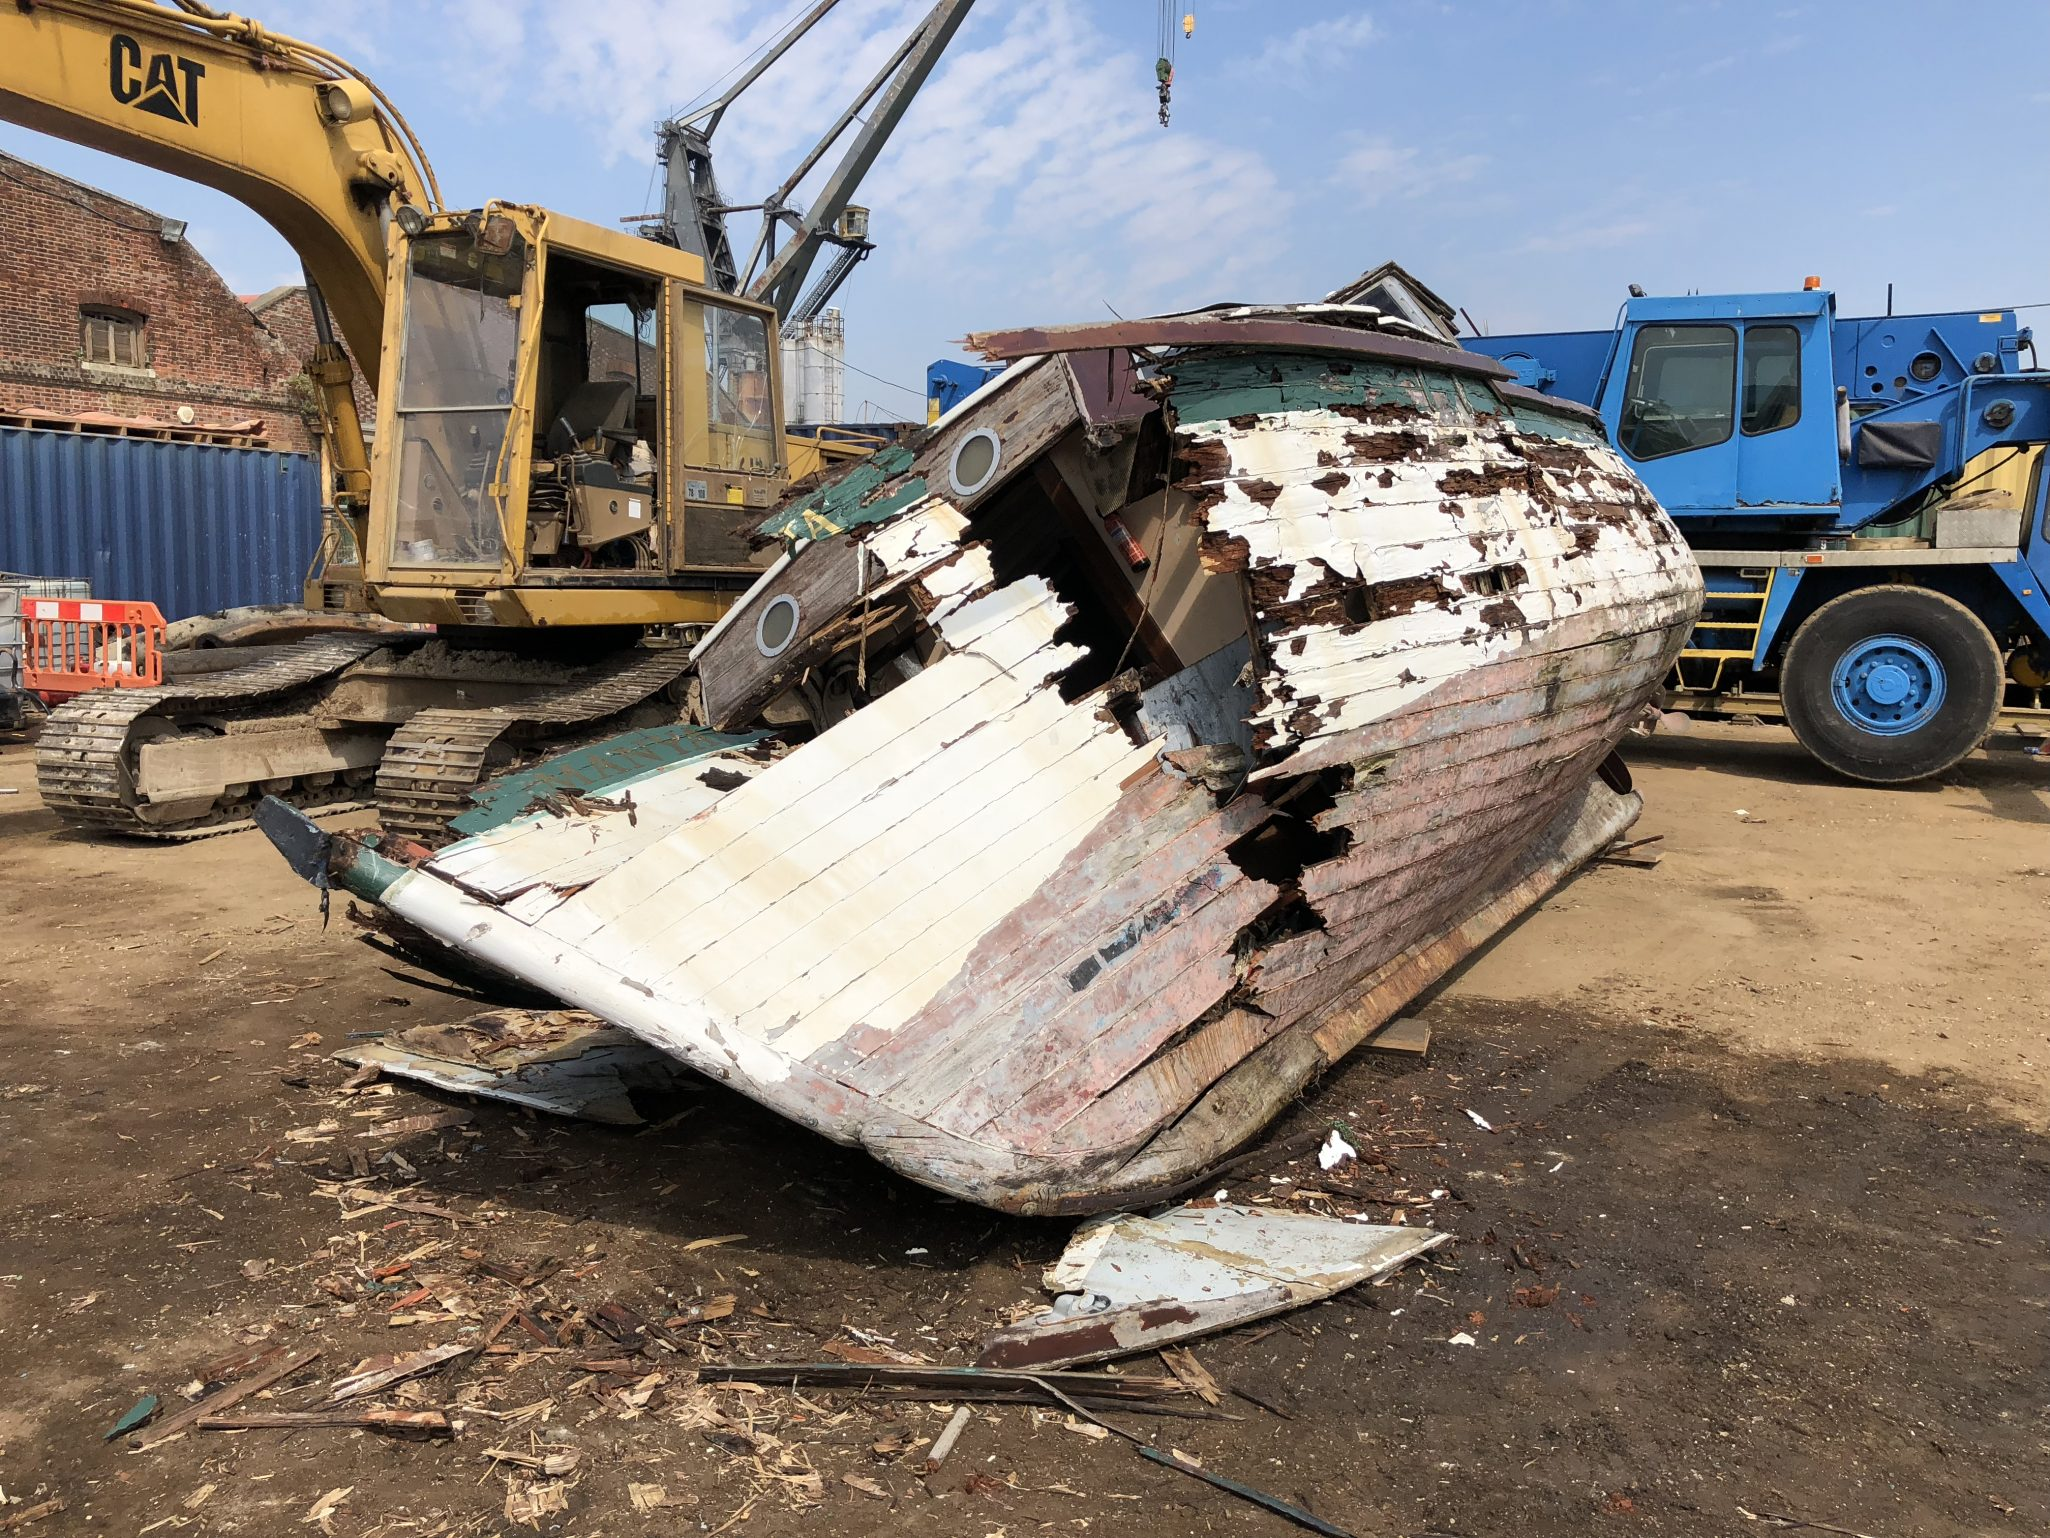 Free No Obligation Scrap Quotation - Rotten Wooden Boat for Recycling